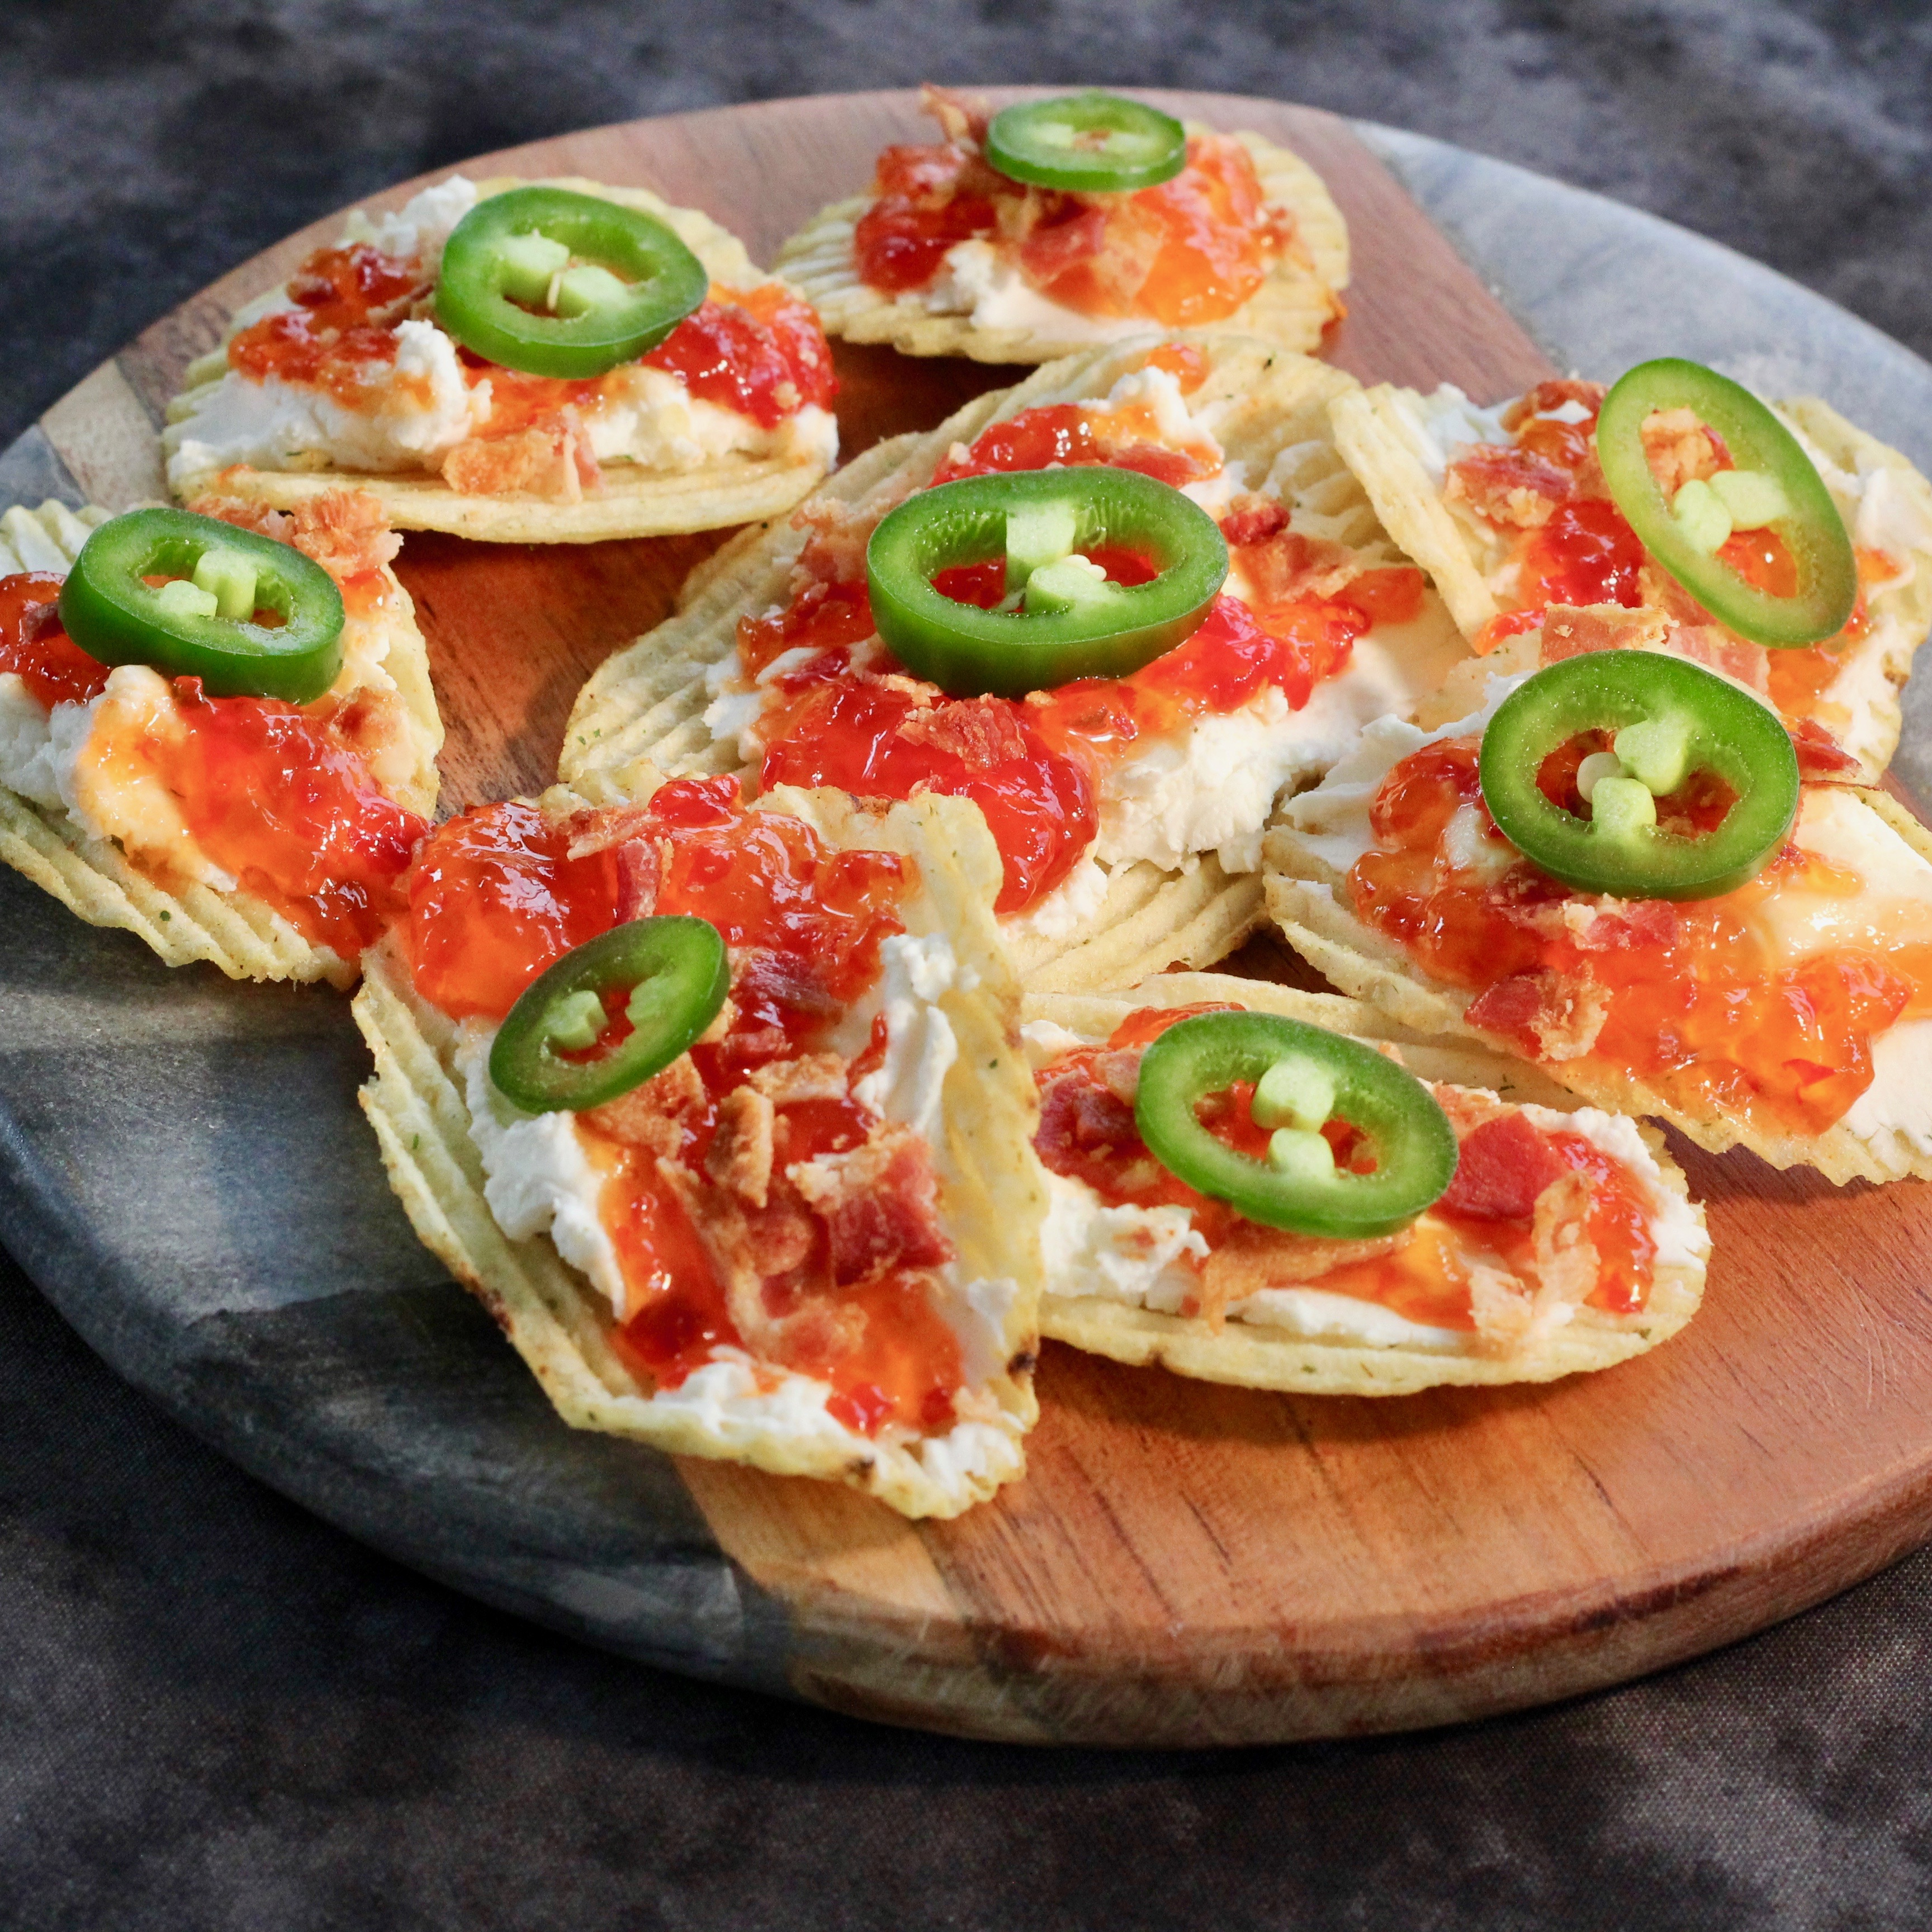 Hot Pepper Jelly Chips